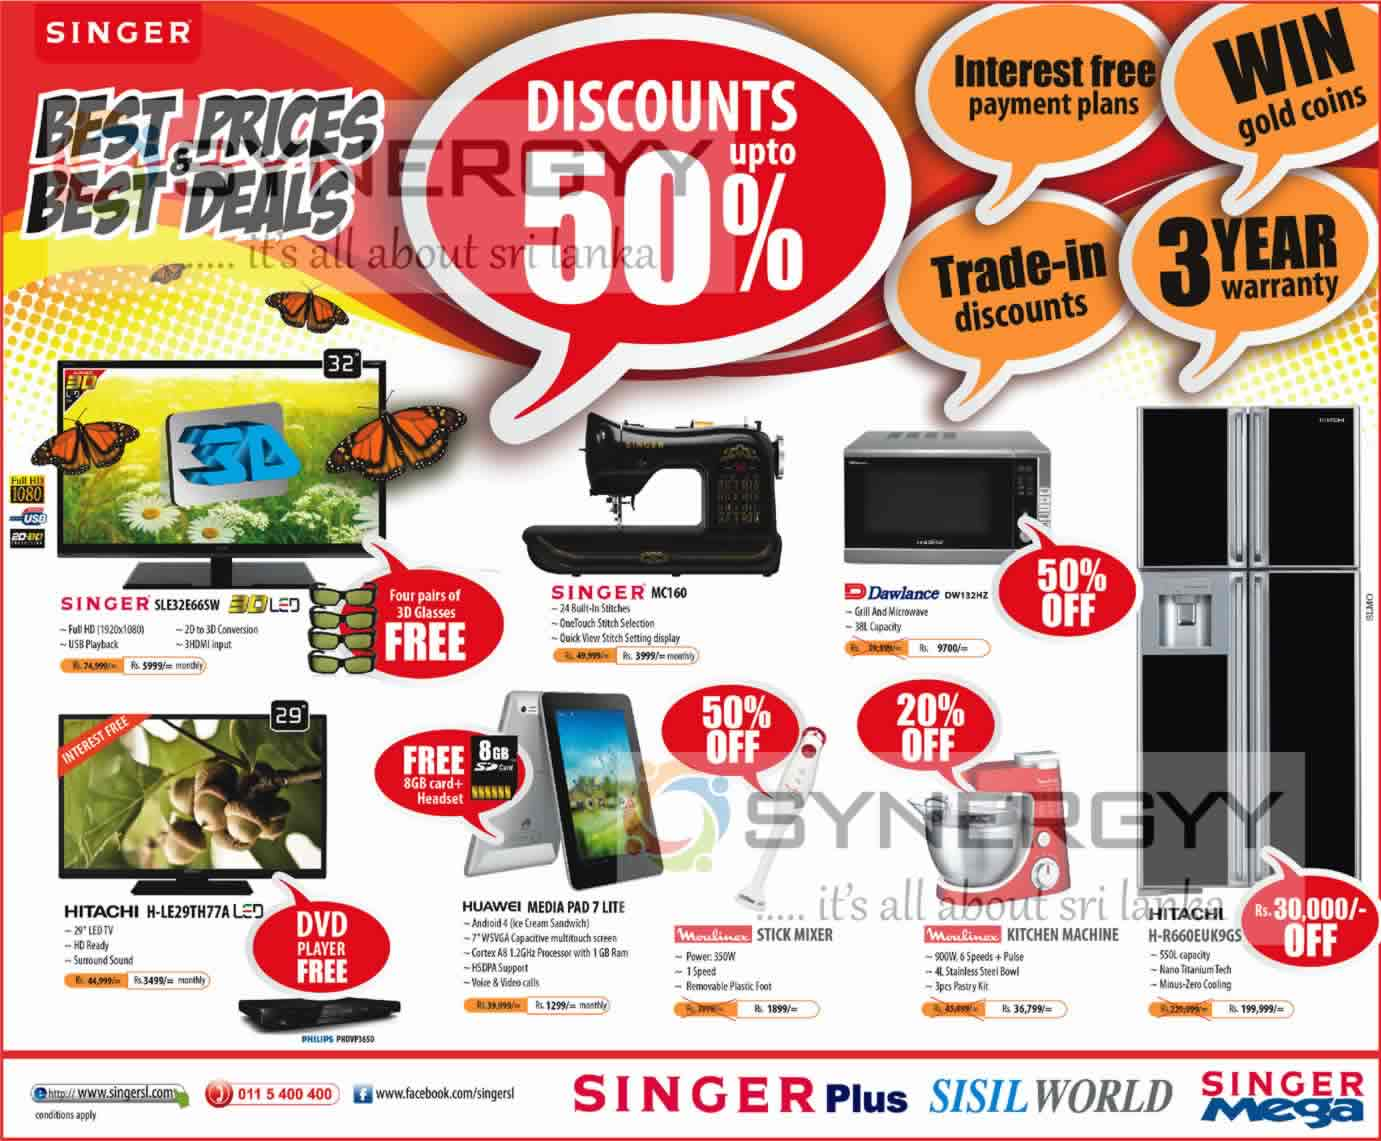 up to 50 discount at singer sri lanka synergyy. Black Bedroom Furniture Sets. Home Design Ideas